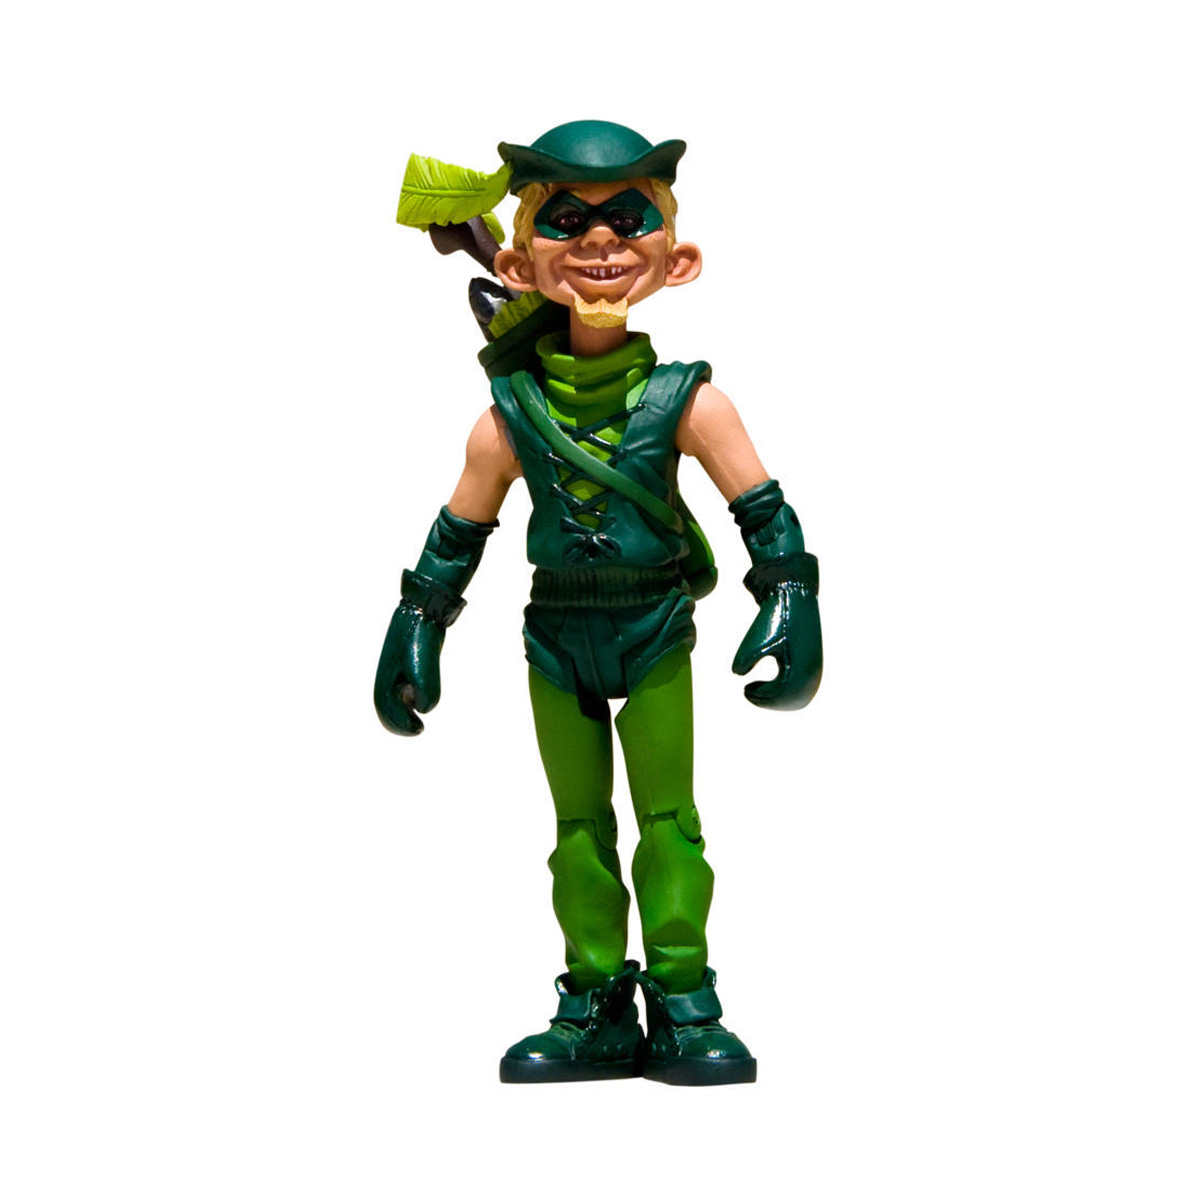 Boneco (Action Figure) MAD Just-Us League Arqueiro Verde